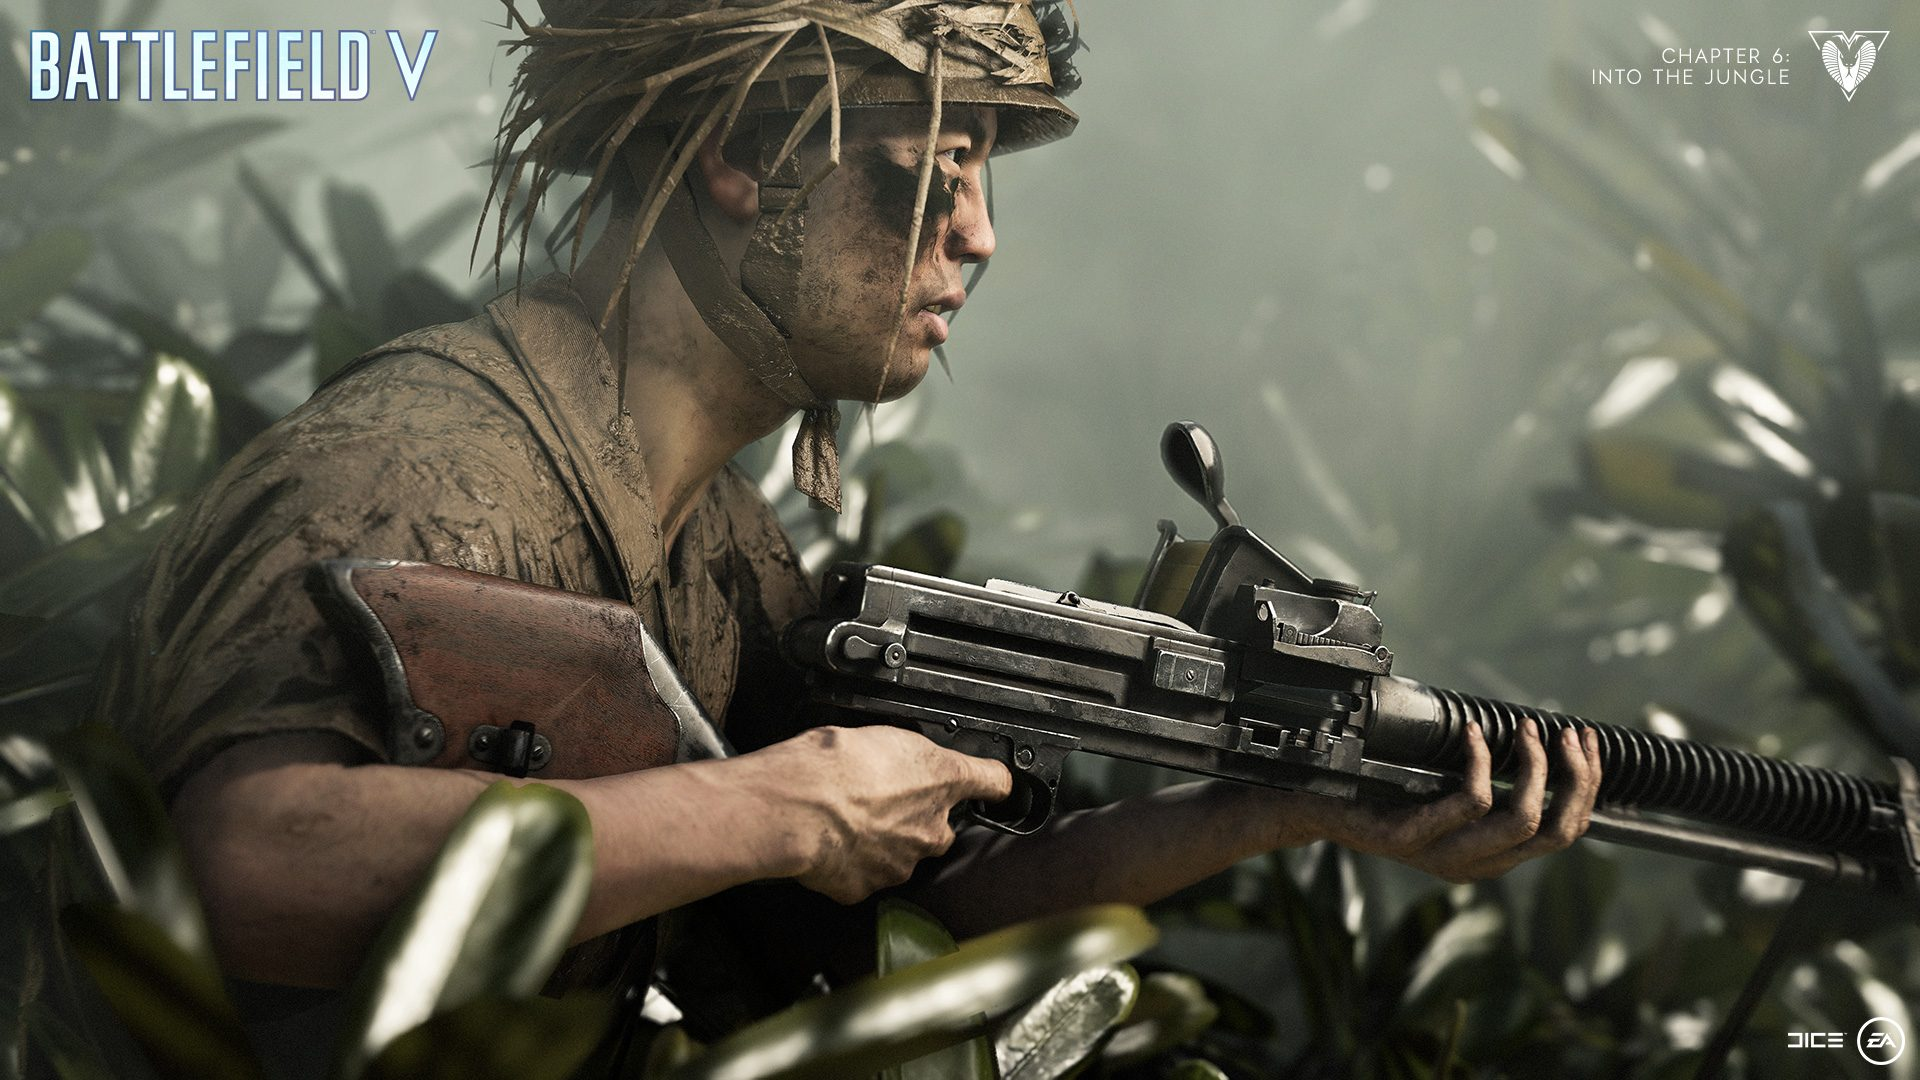 Battlefield 5 Into the Jungle